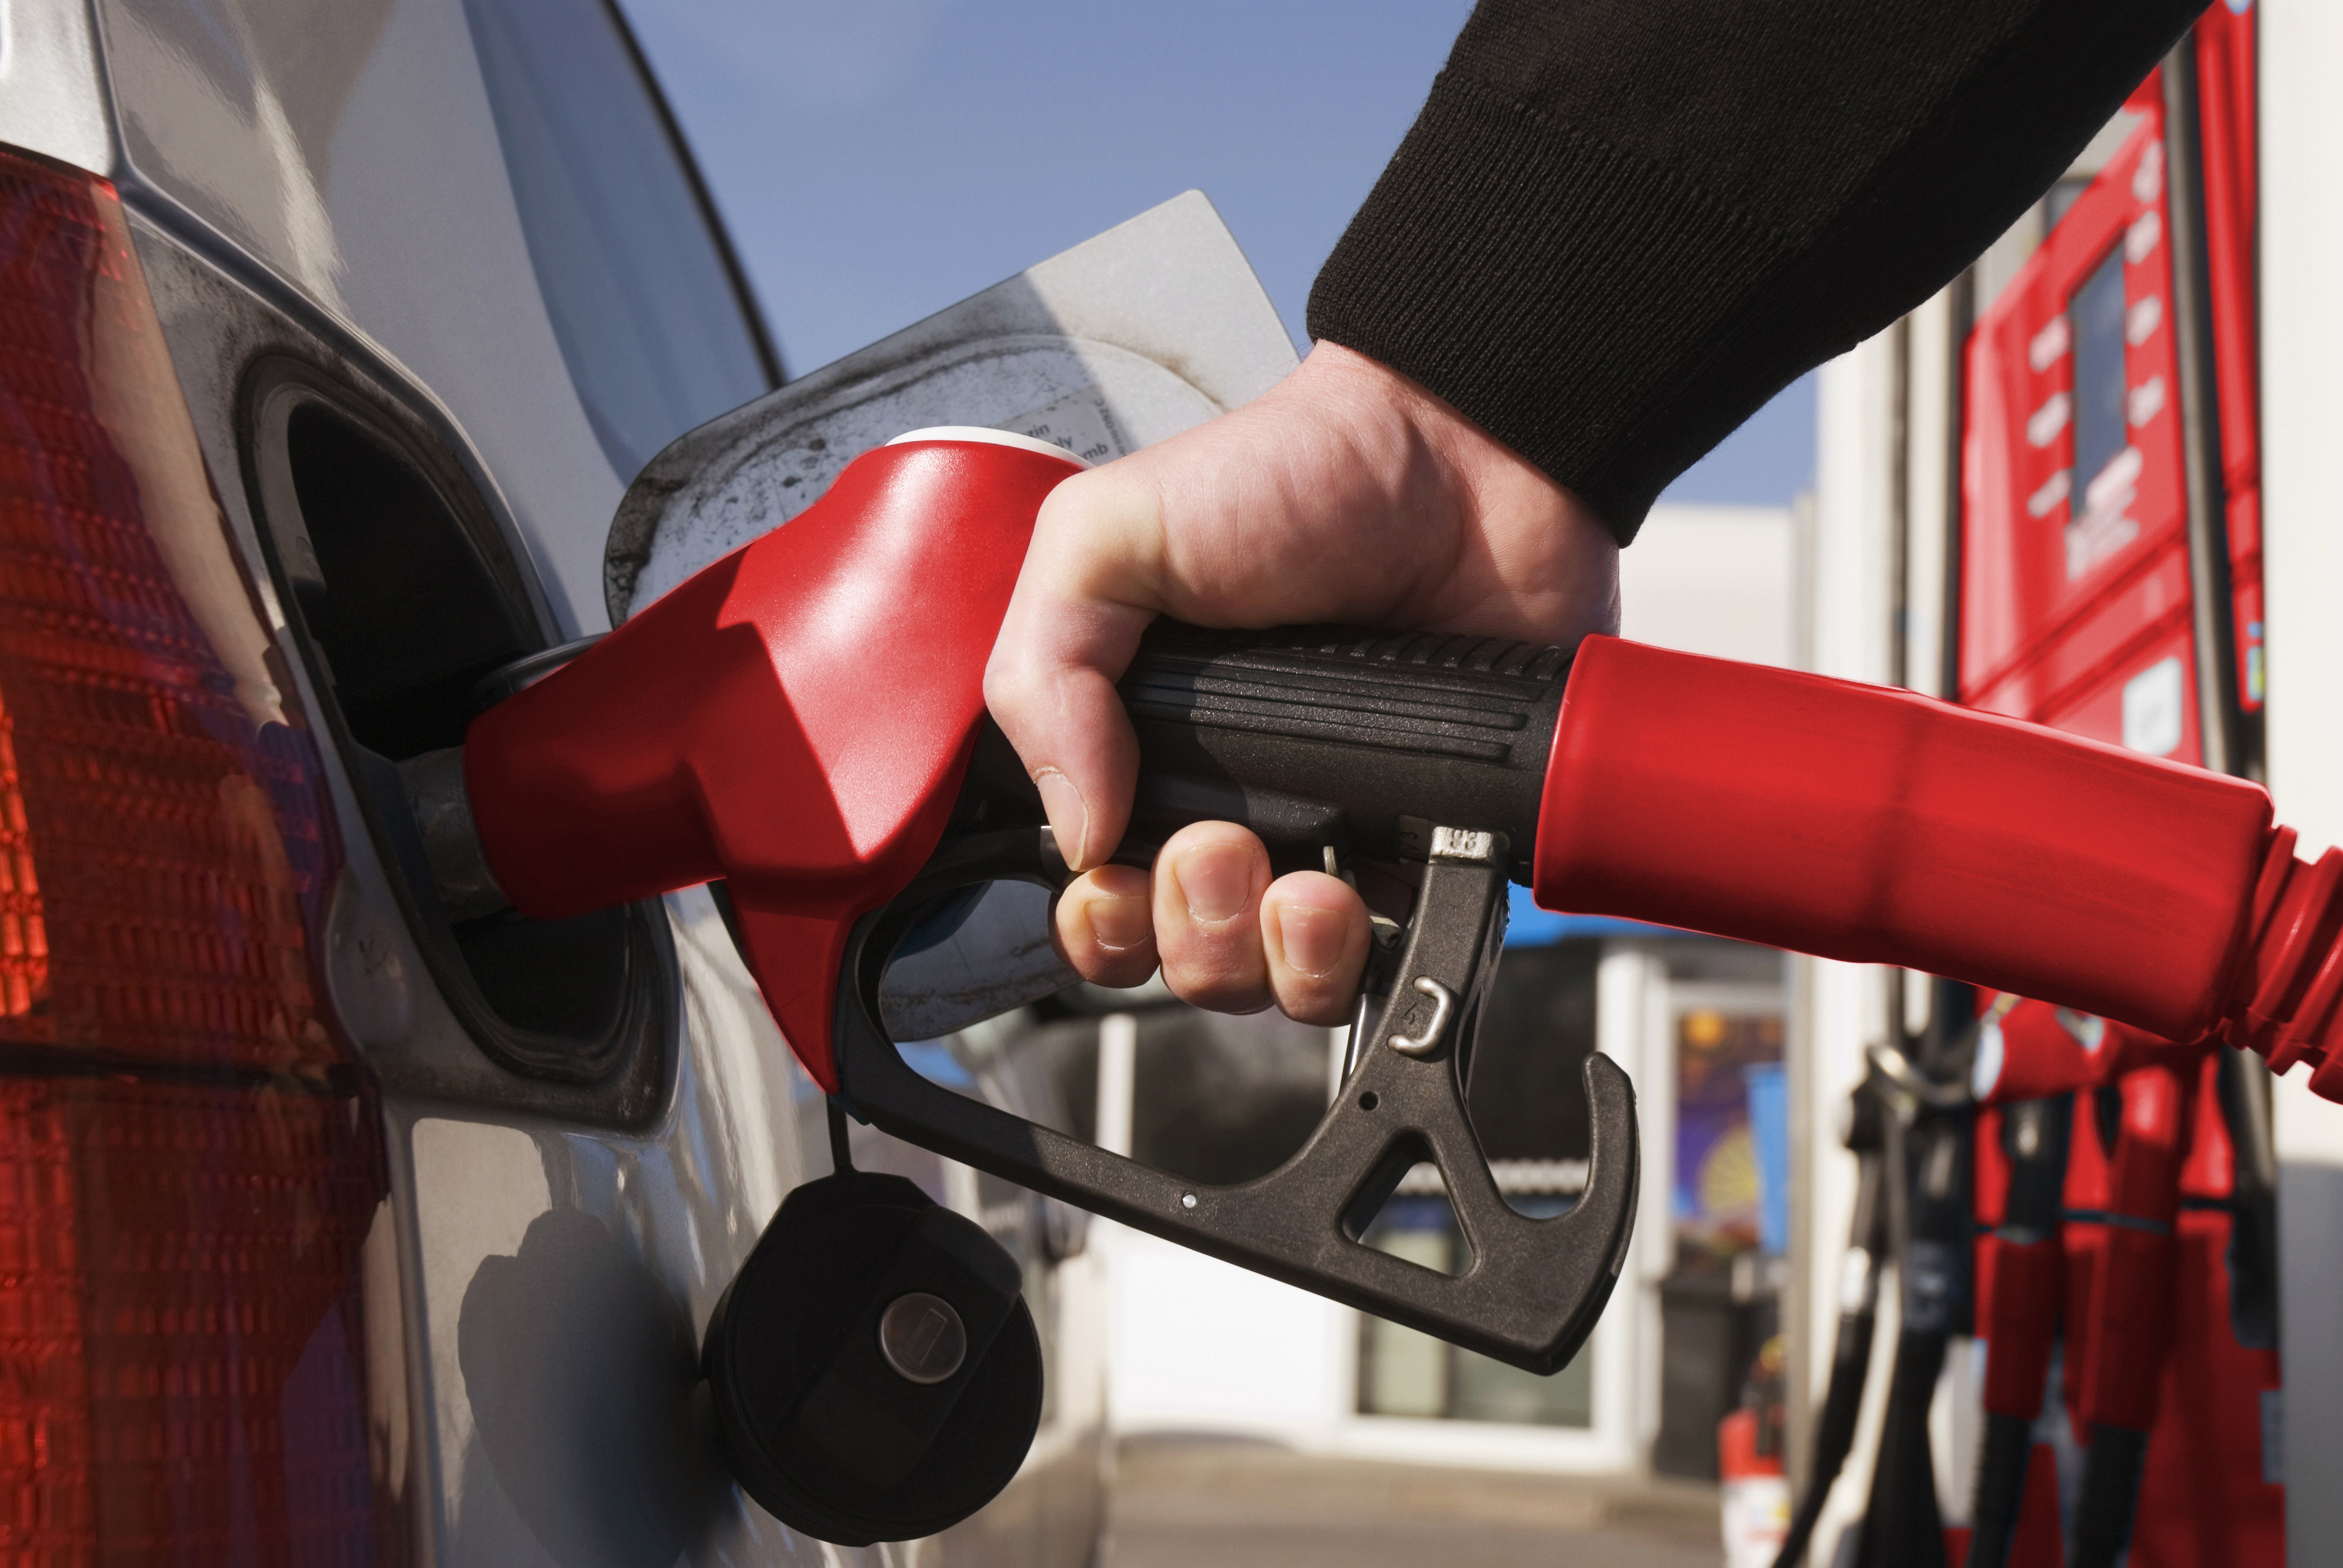 Gas prices are high this Memorial Day weekend